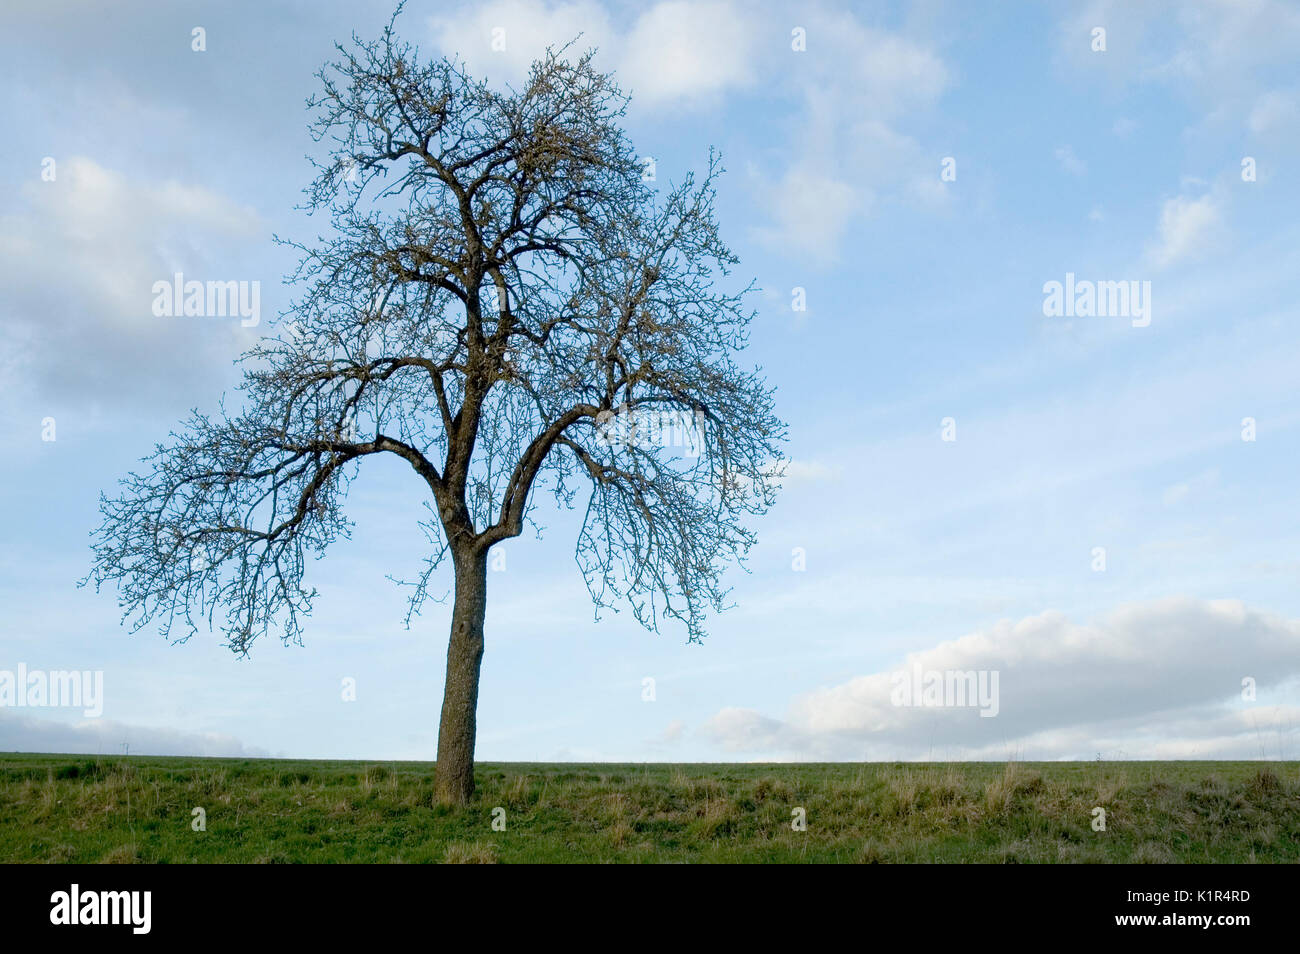 leafless tree in spring - Stock Image